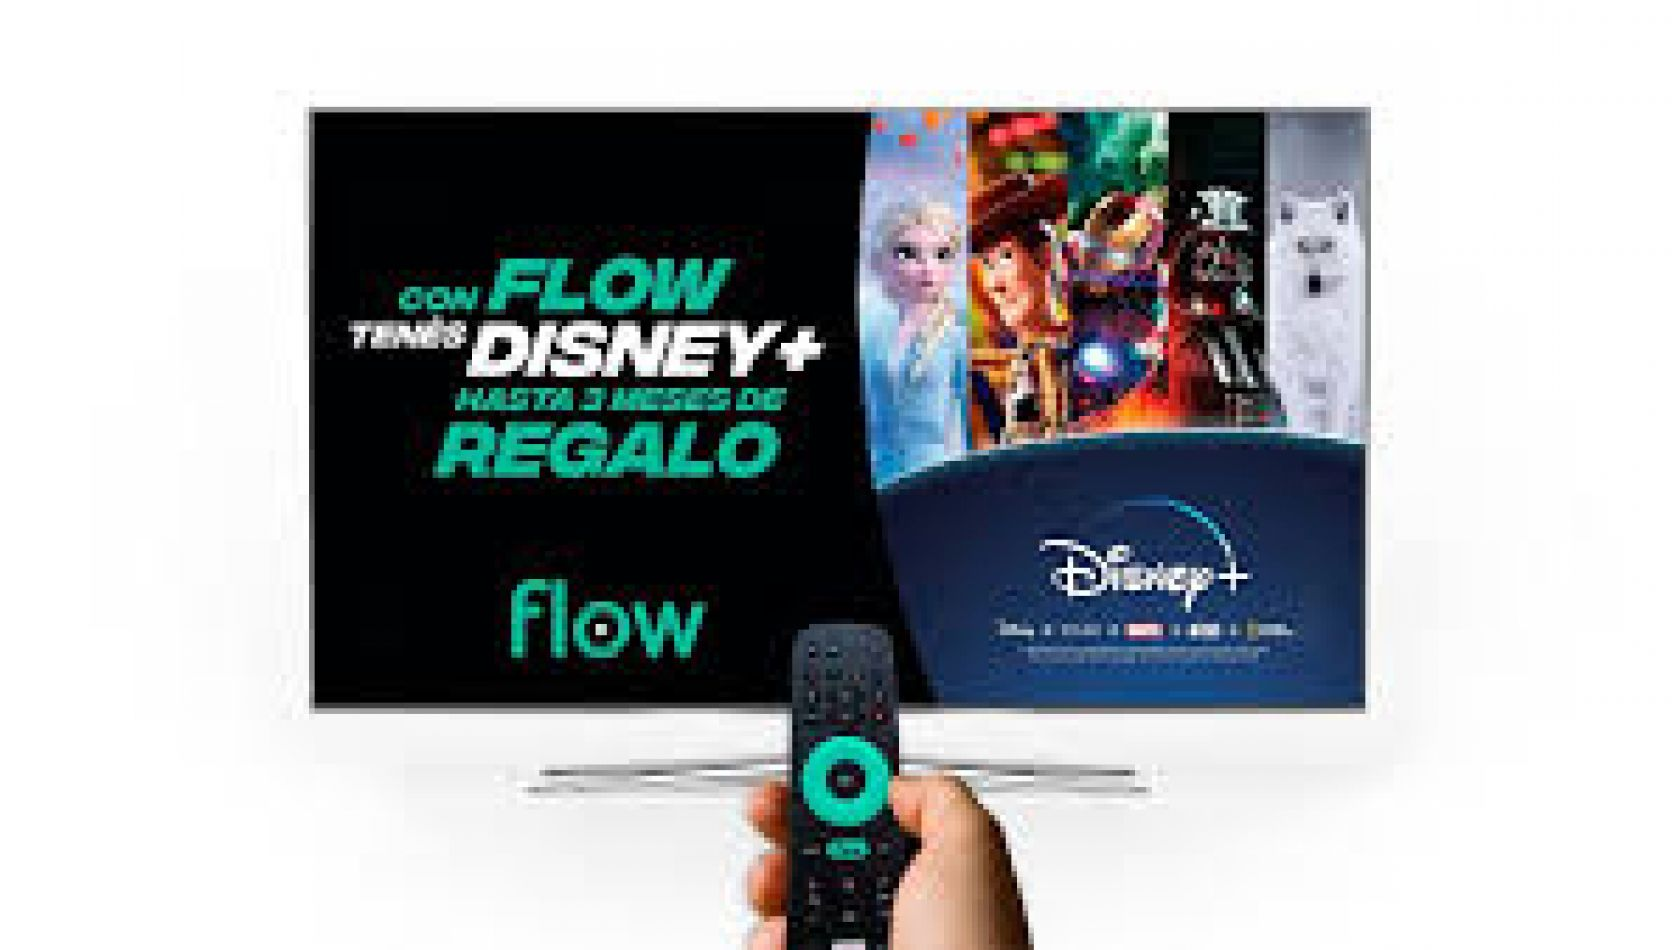 La magia de Disney + estará en Flow